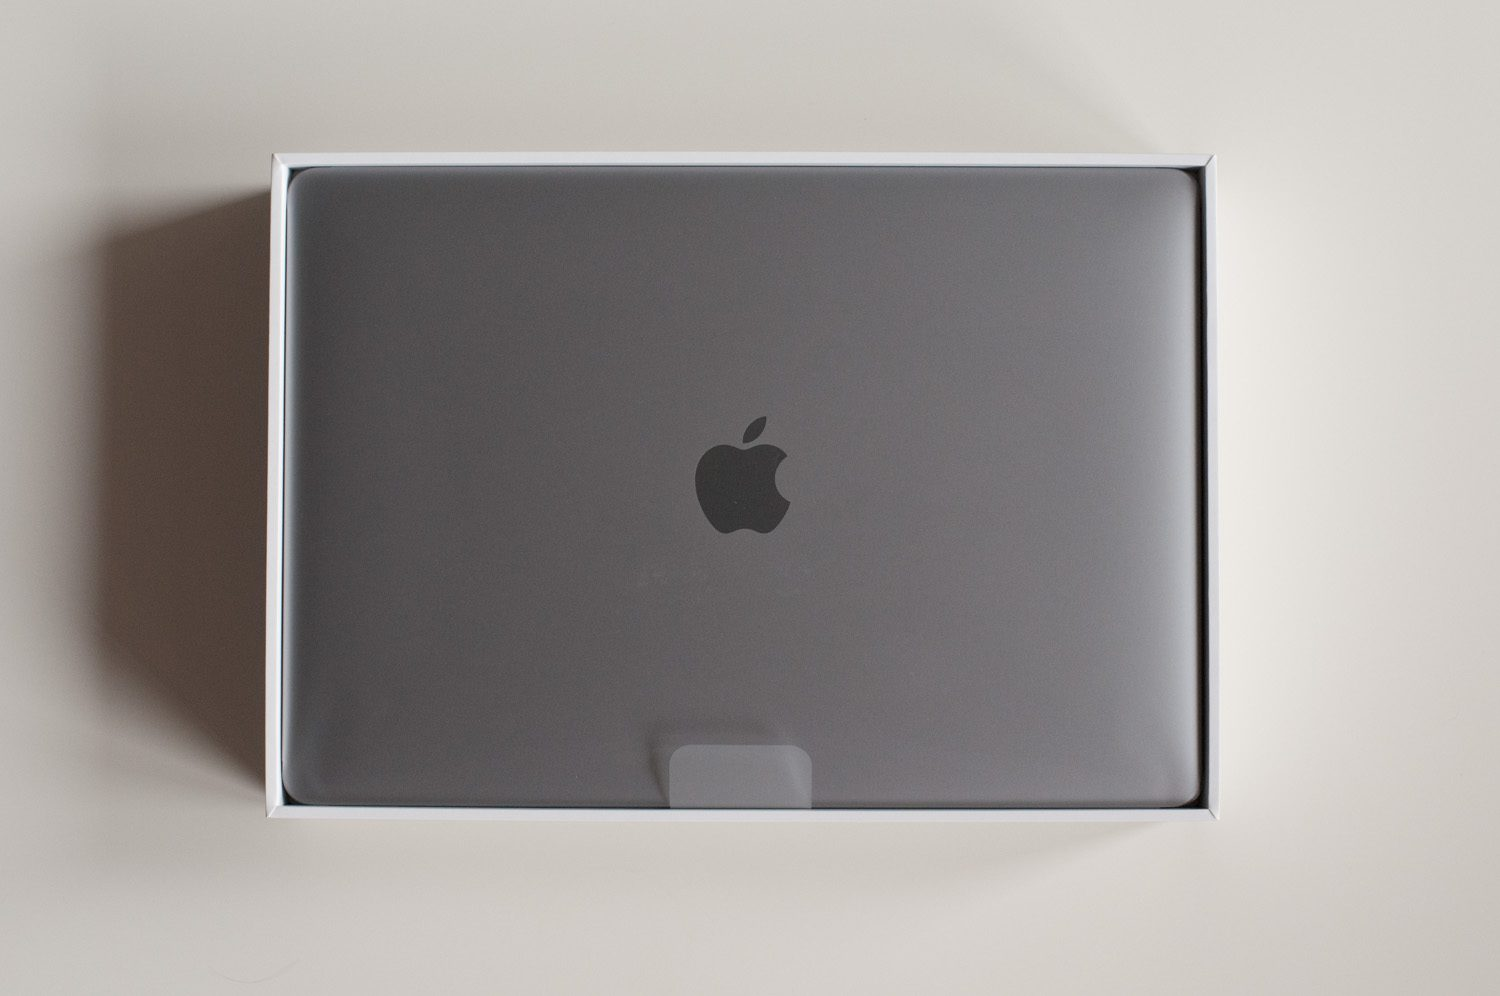 macbook w pudełku